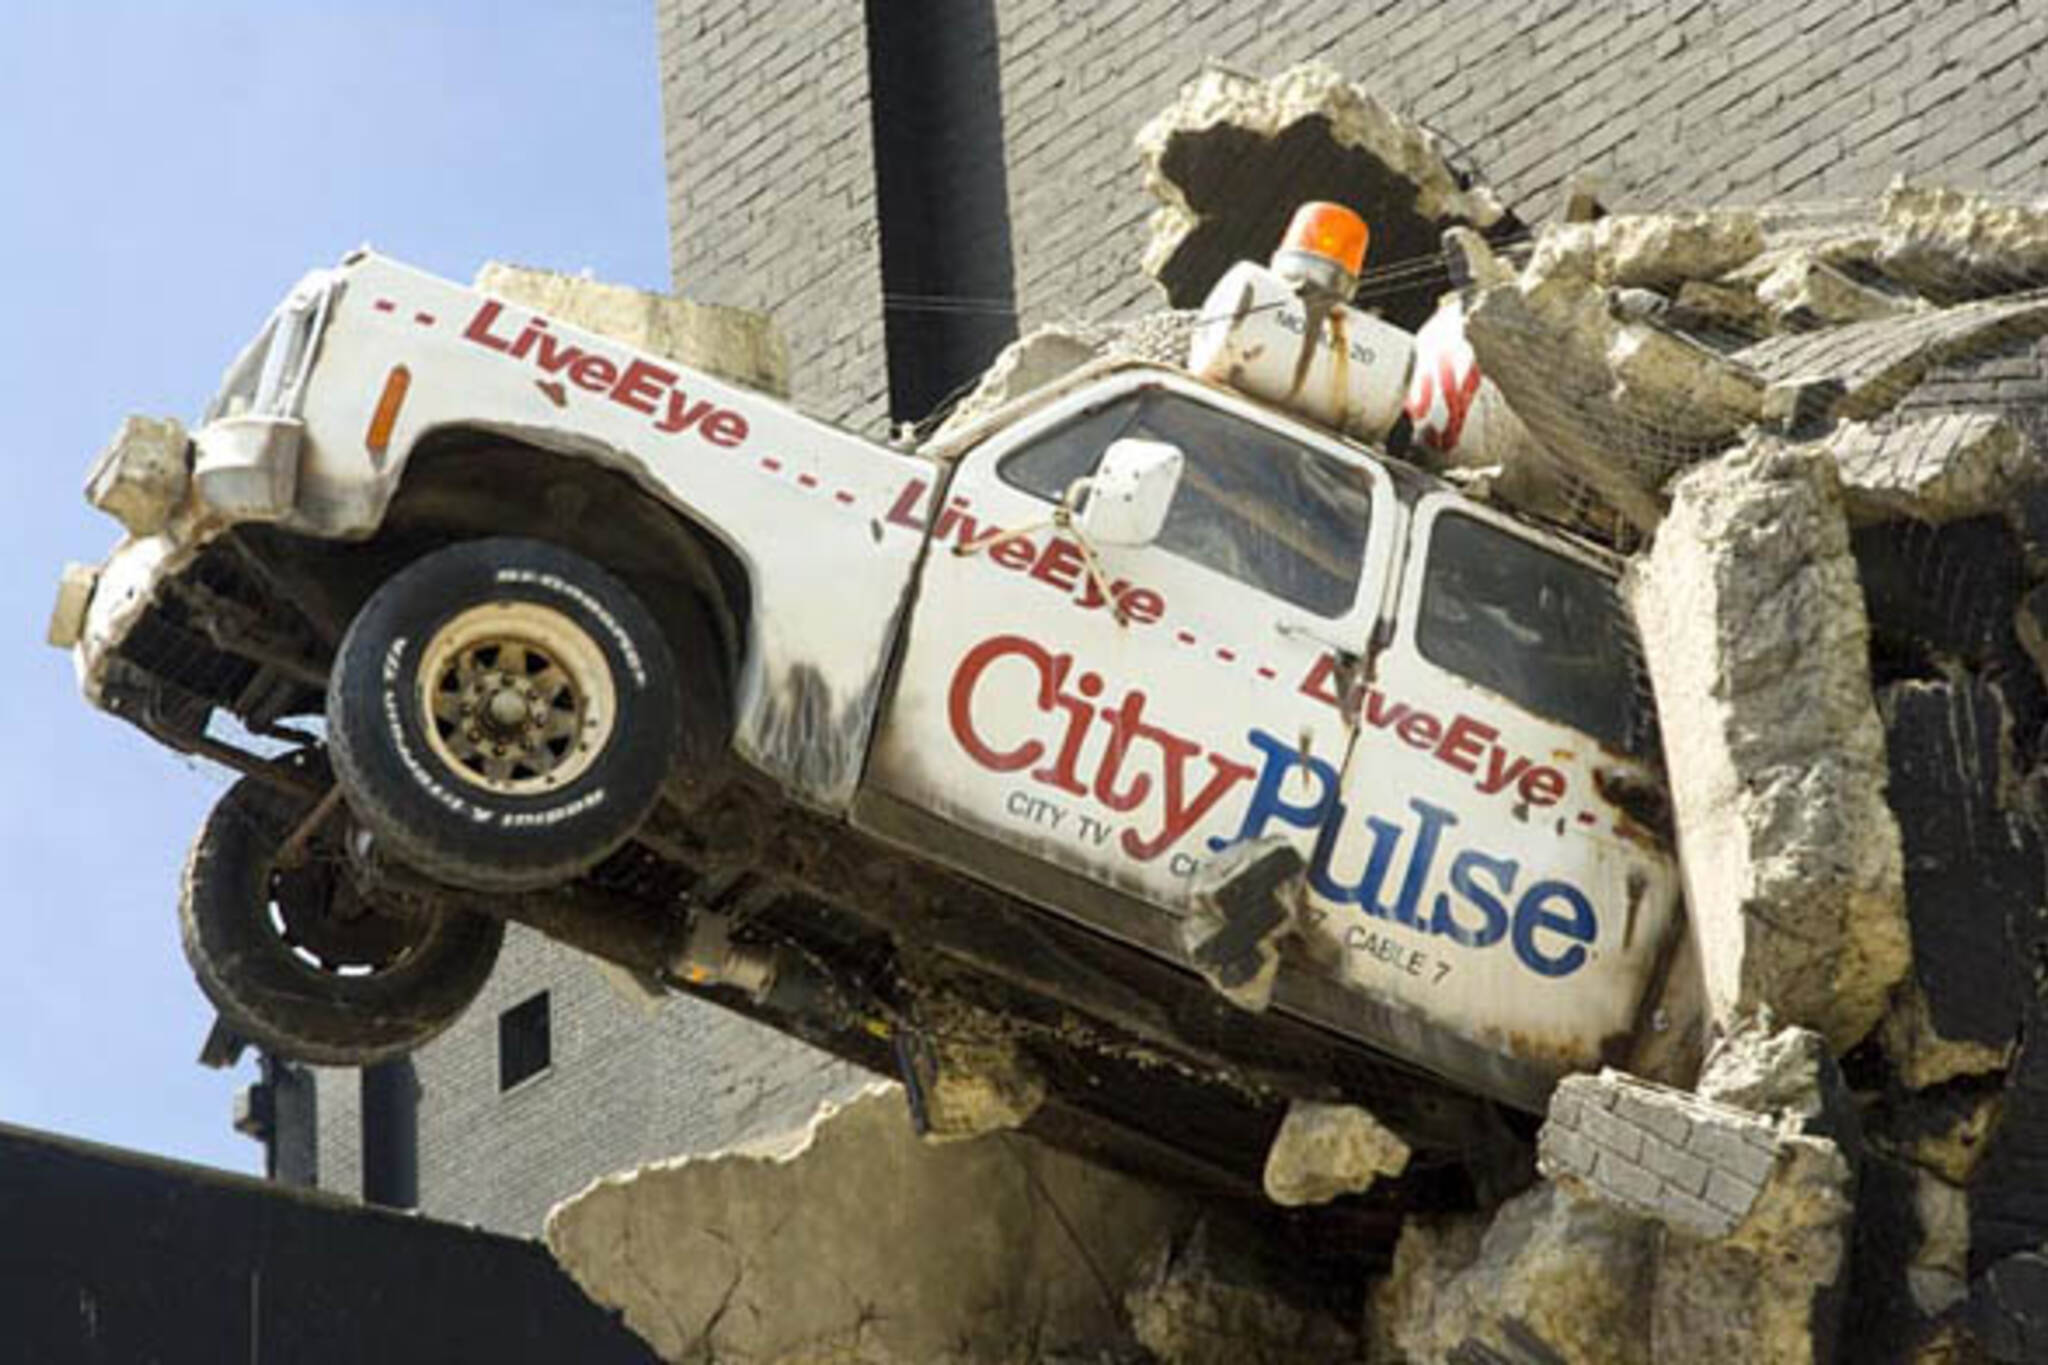 City Pulse Truck at the CHUM Headquarters